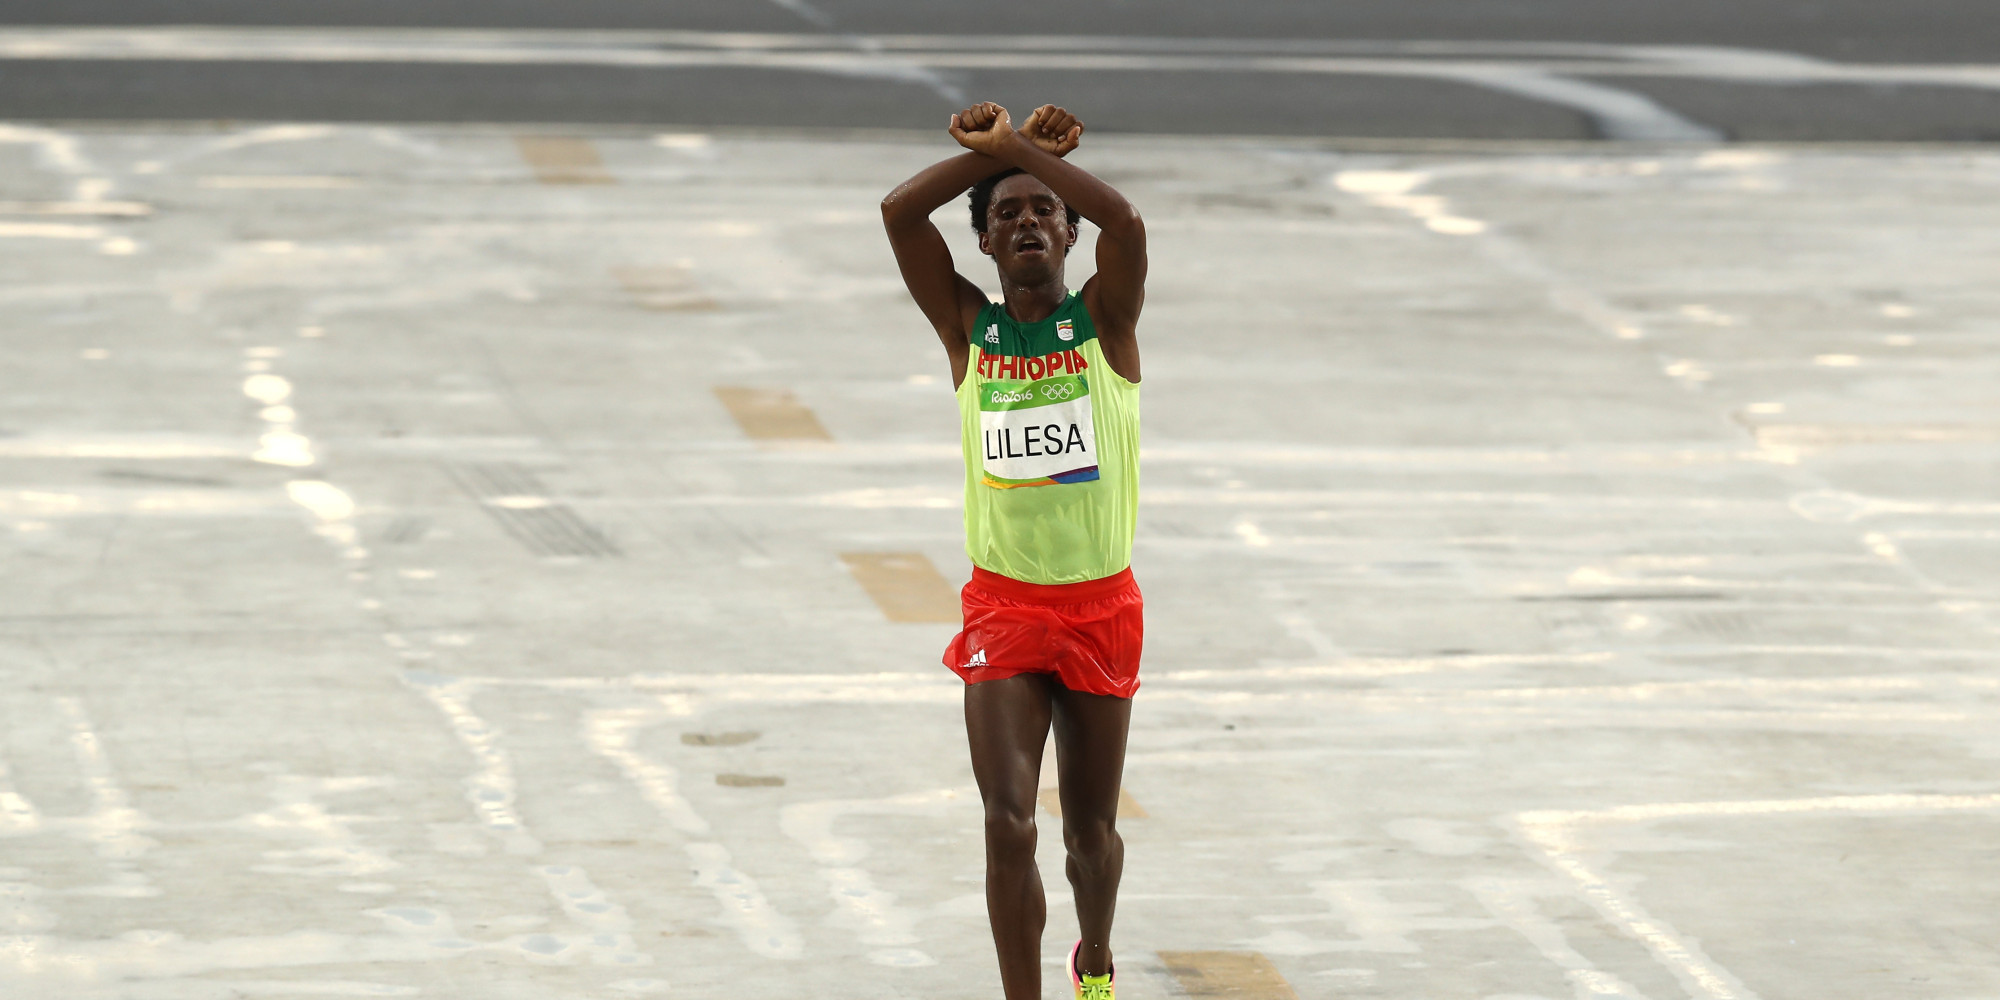 RIO DE JANEIRO, BRAZIL - AUGUST 21:  Feyisa Lilesa of Ethiopia celebrates as he crosses the line to win silver during the Men's Marathon on Day 16 of the Rio 2016 Olympic Games at Sambodromo on August 21, 2016 in Rio de Janeiro, Brazil.  (Photo by Buda Mendes/Getty Images)